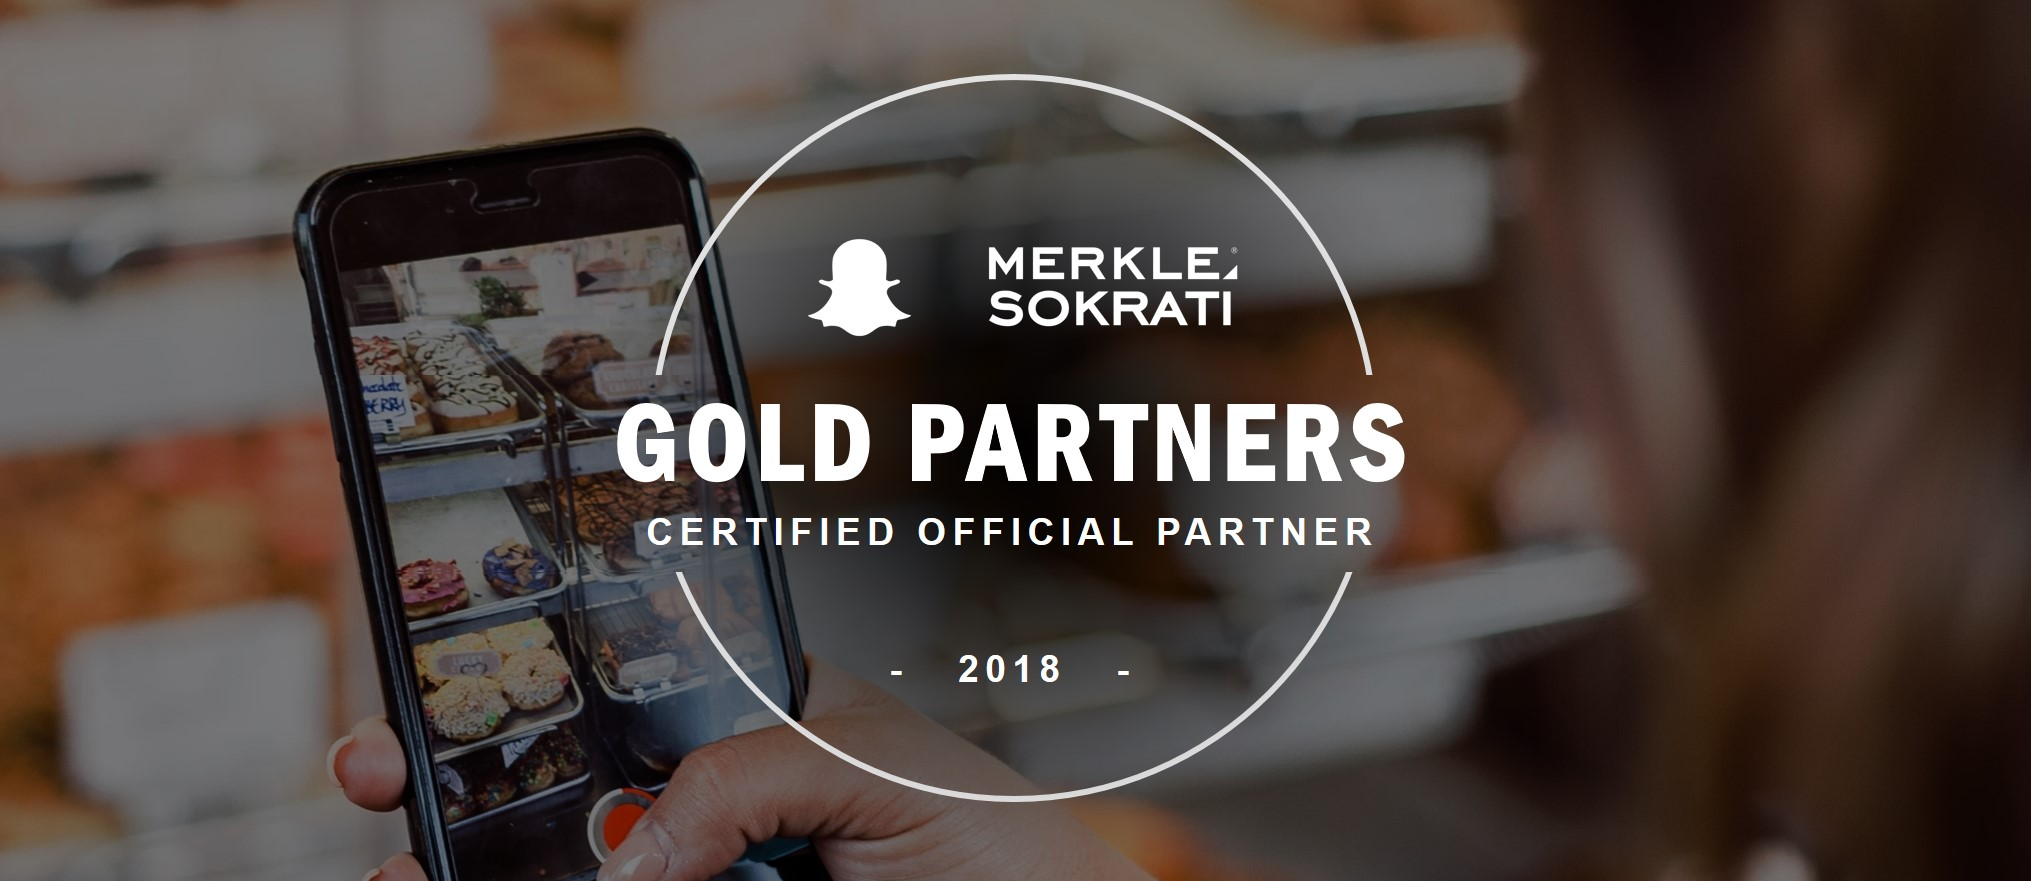 SnapChat Gold Certified Partner Merkle Sokrati